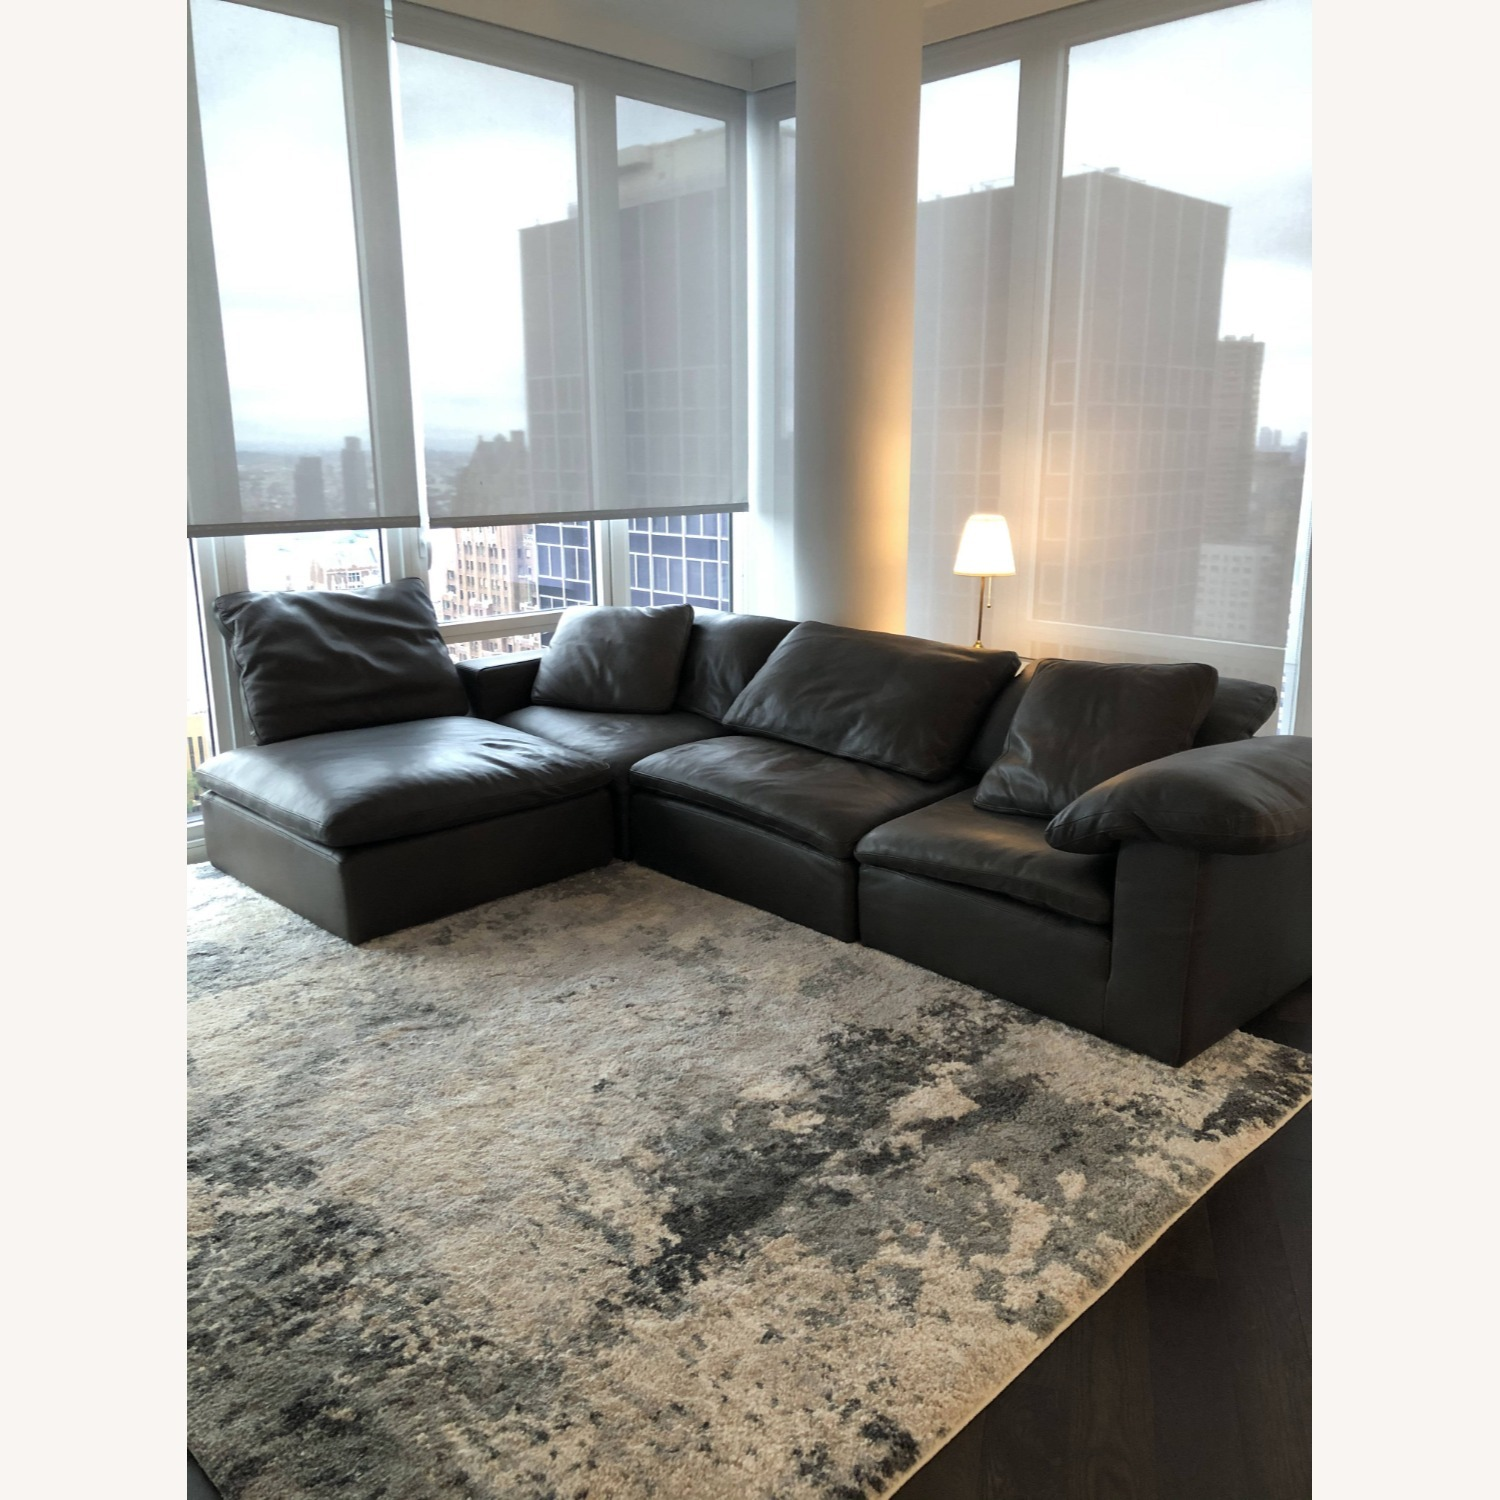 Restoration Hardware Leather Sectional Couch - image-2